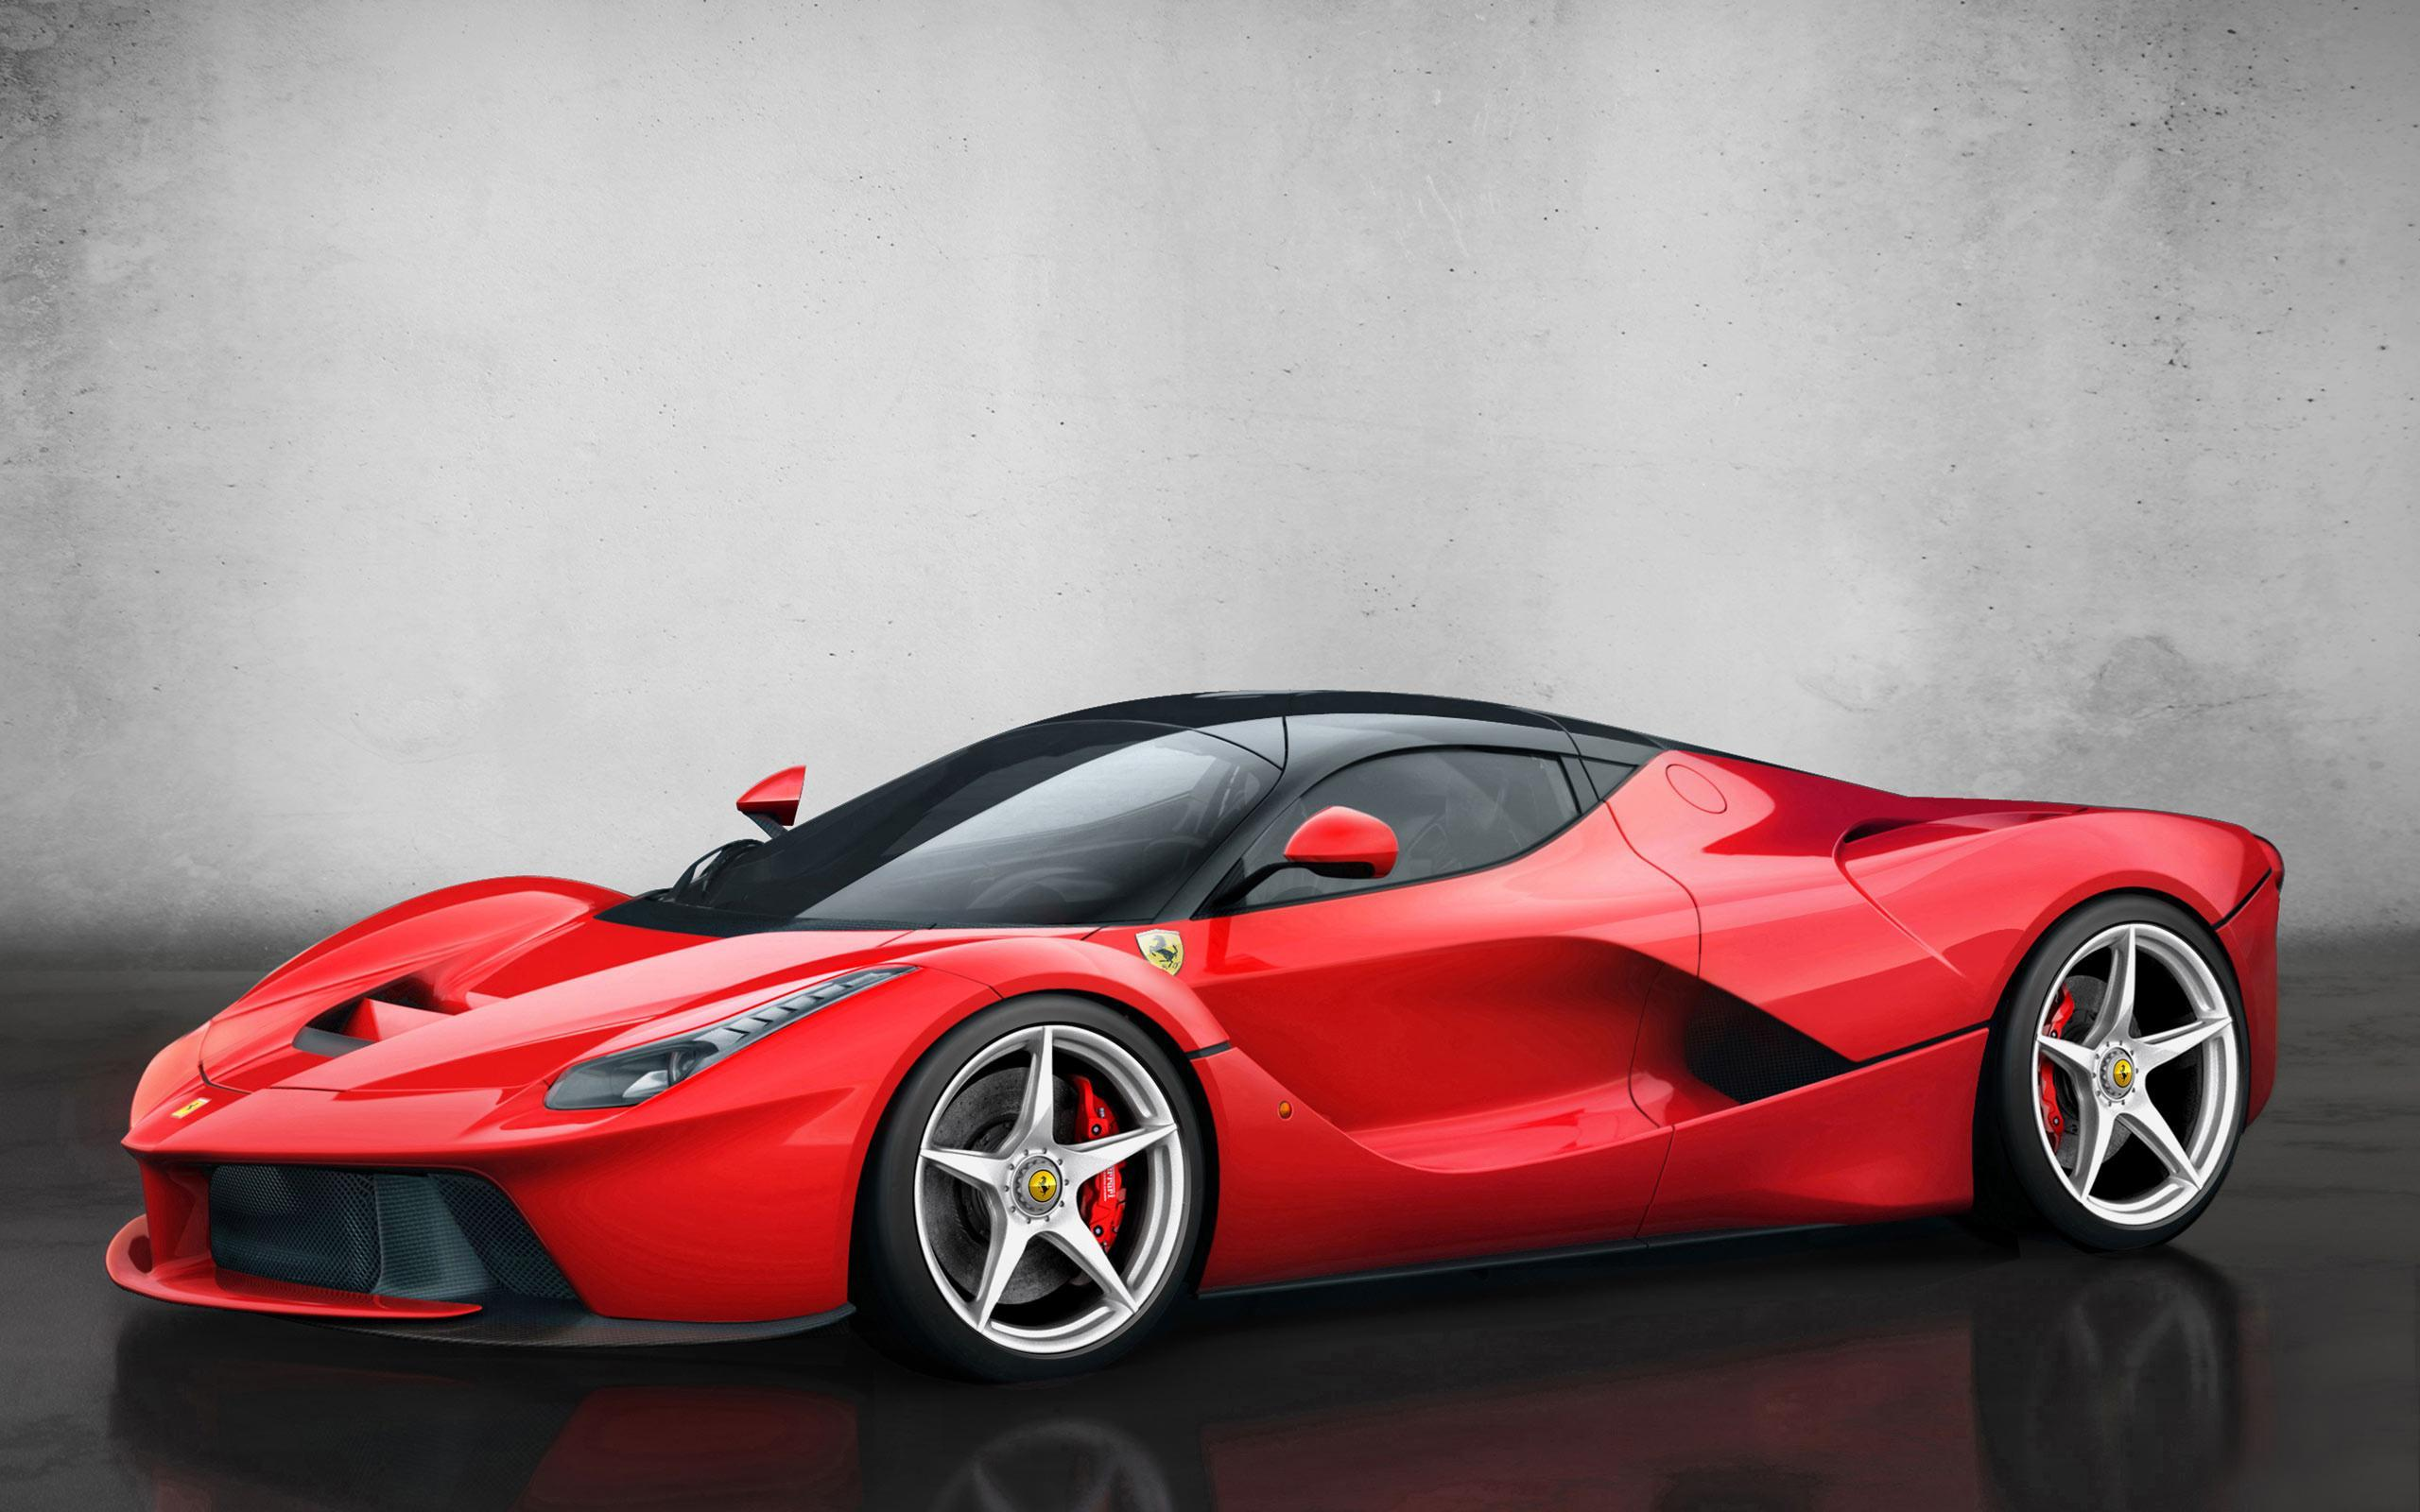 Ferrari Cars Hd Wallpapers For Android Apk Download